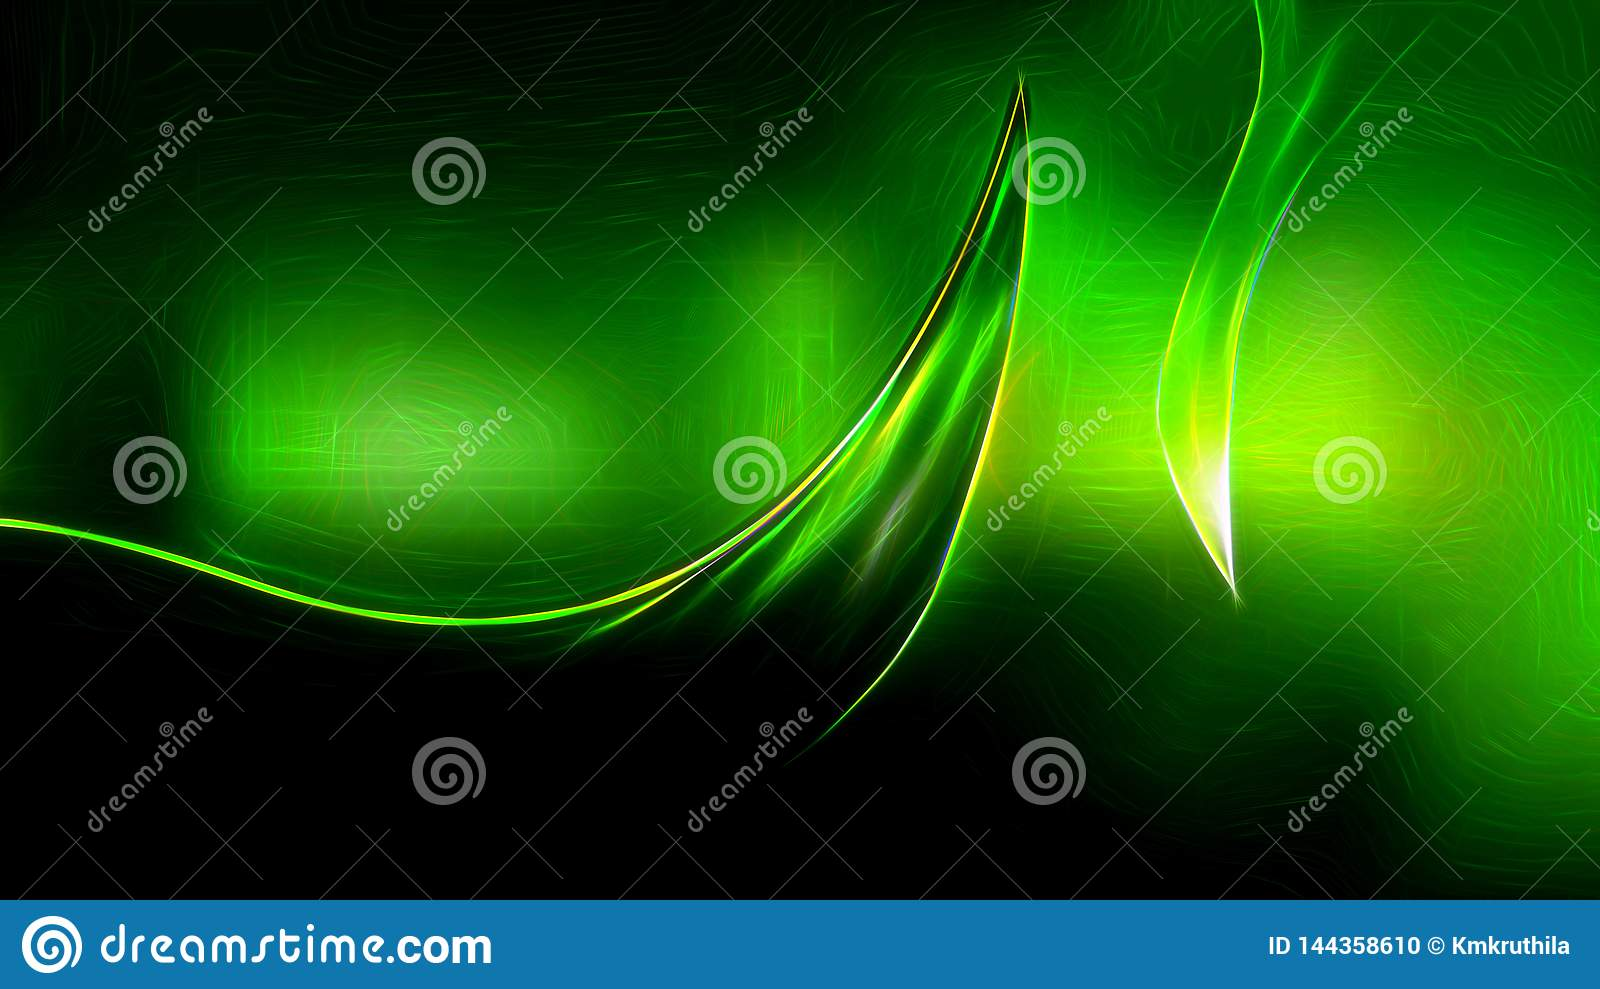 Abstract Cool Green Texture Background Design Stock